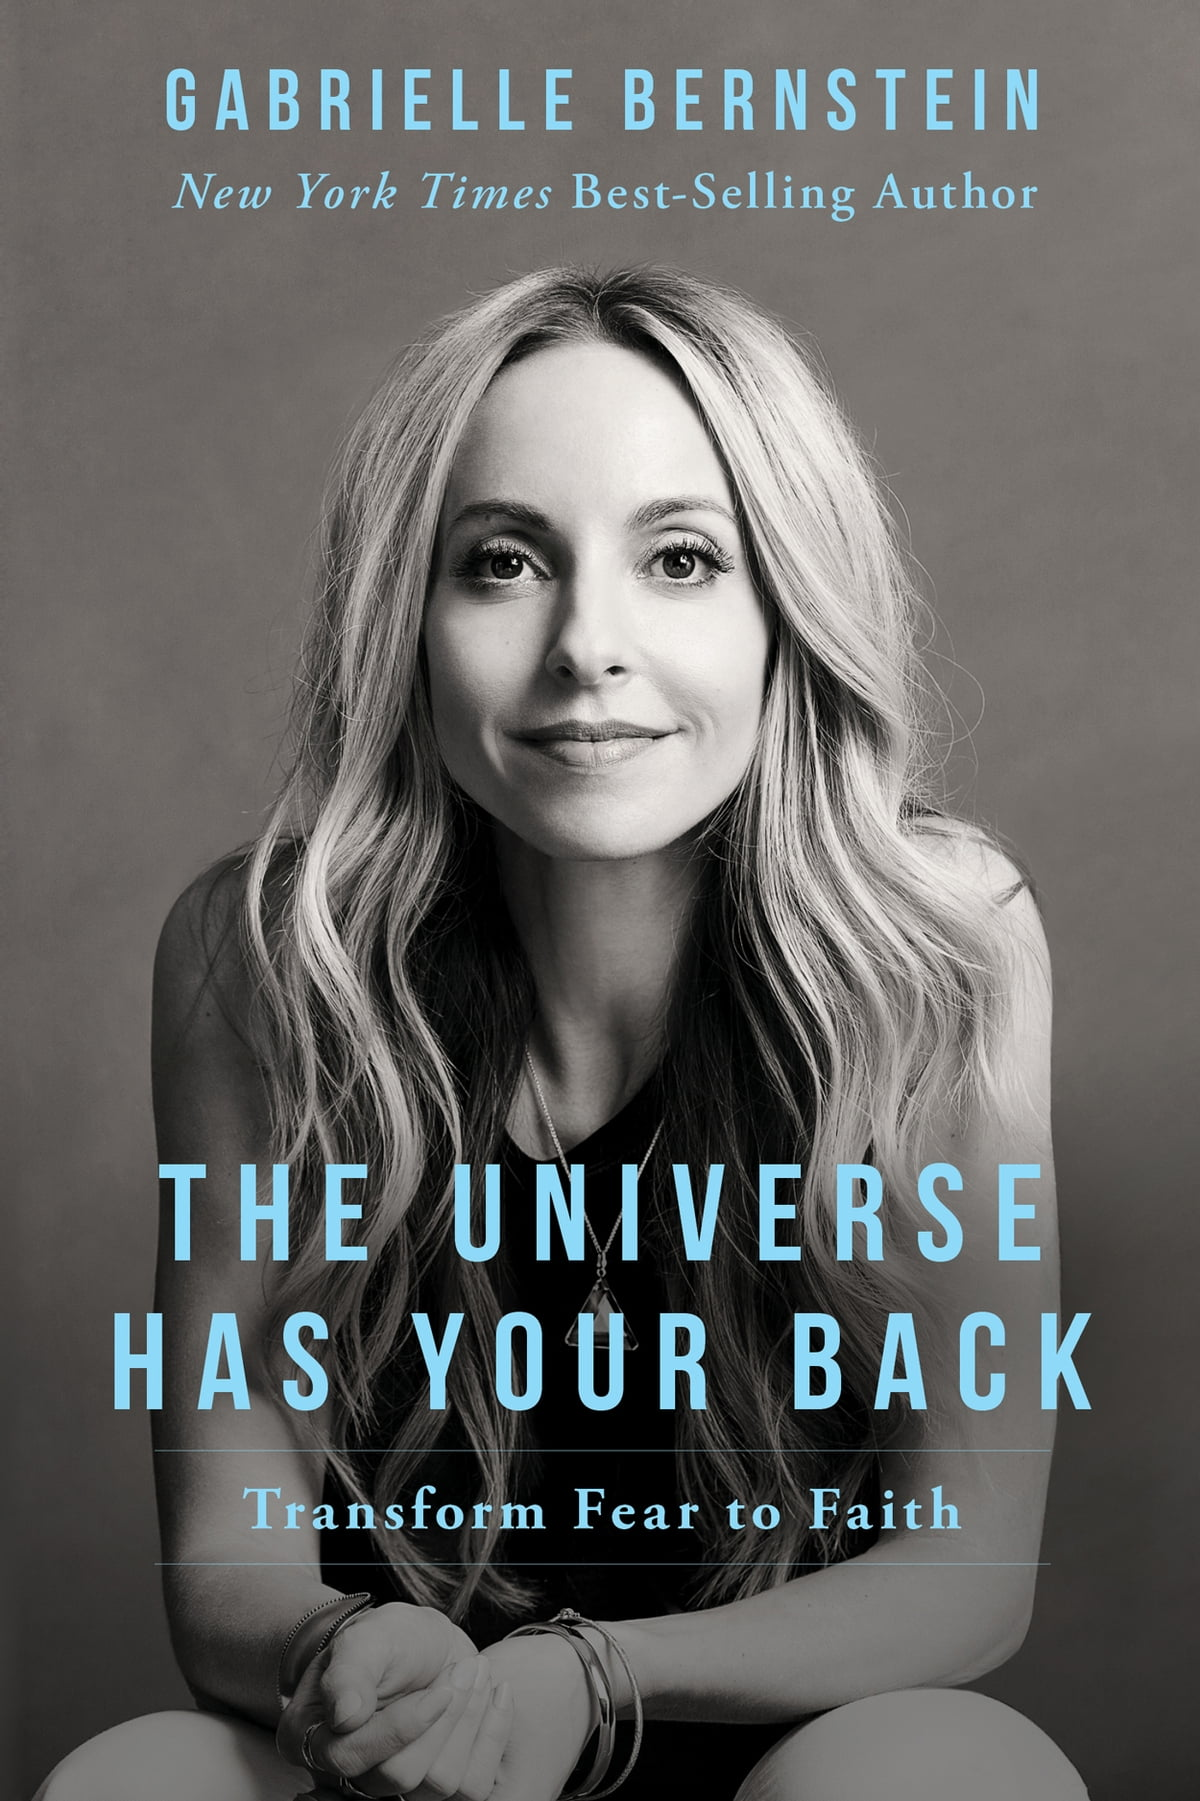 The untethered soul ebook by michael singer 9781608820498 the universe has your back transform fear to faith ebook by gabrielle bernstein fandeluxe Gallery